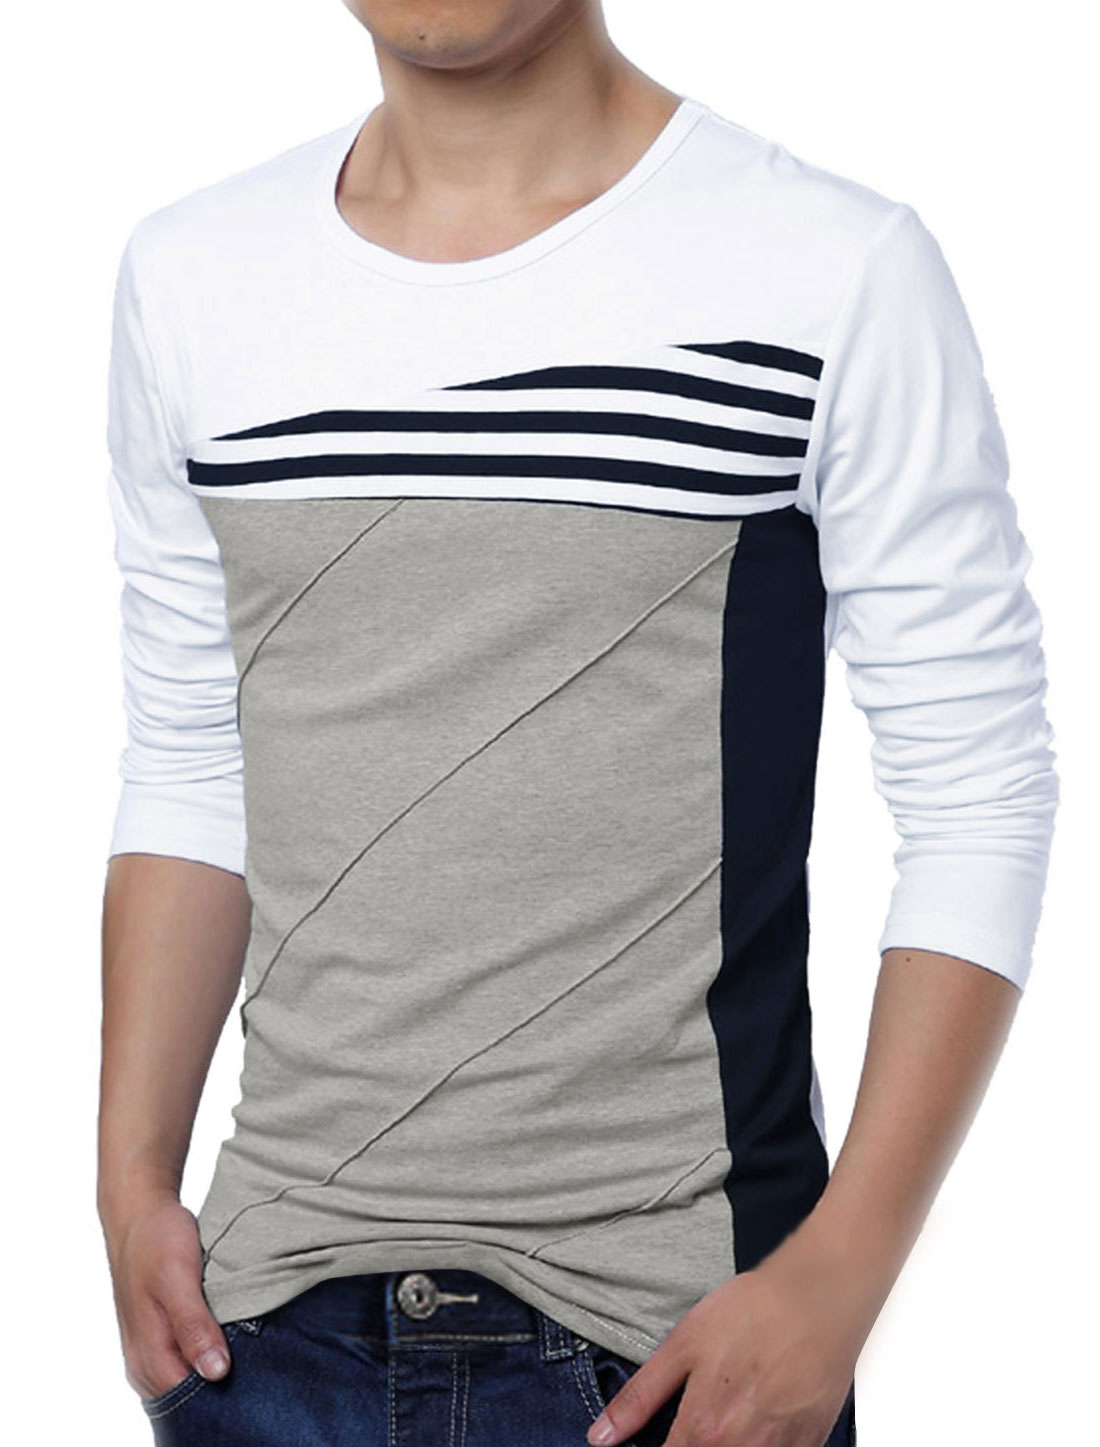 Men Long Sleeves Color Block Stripes Tee Shirt White Gray S